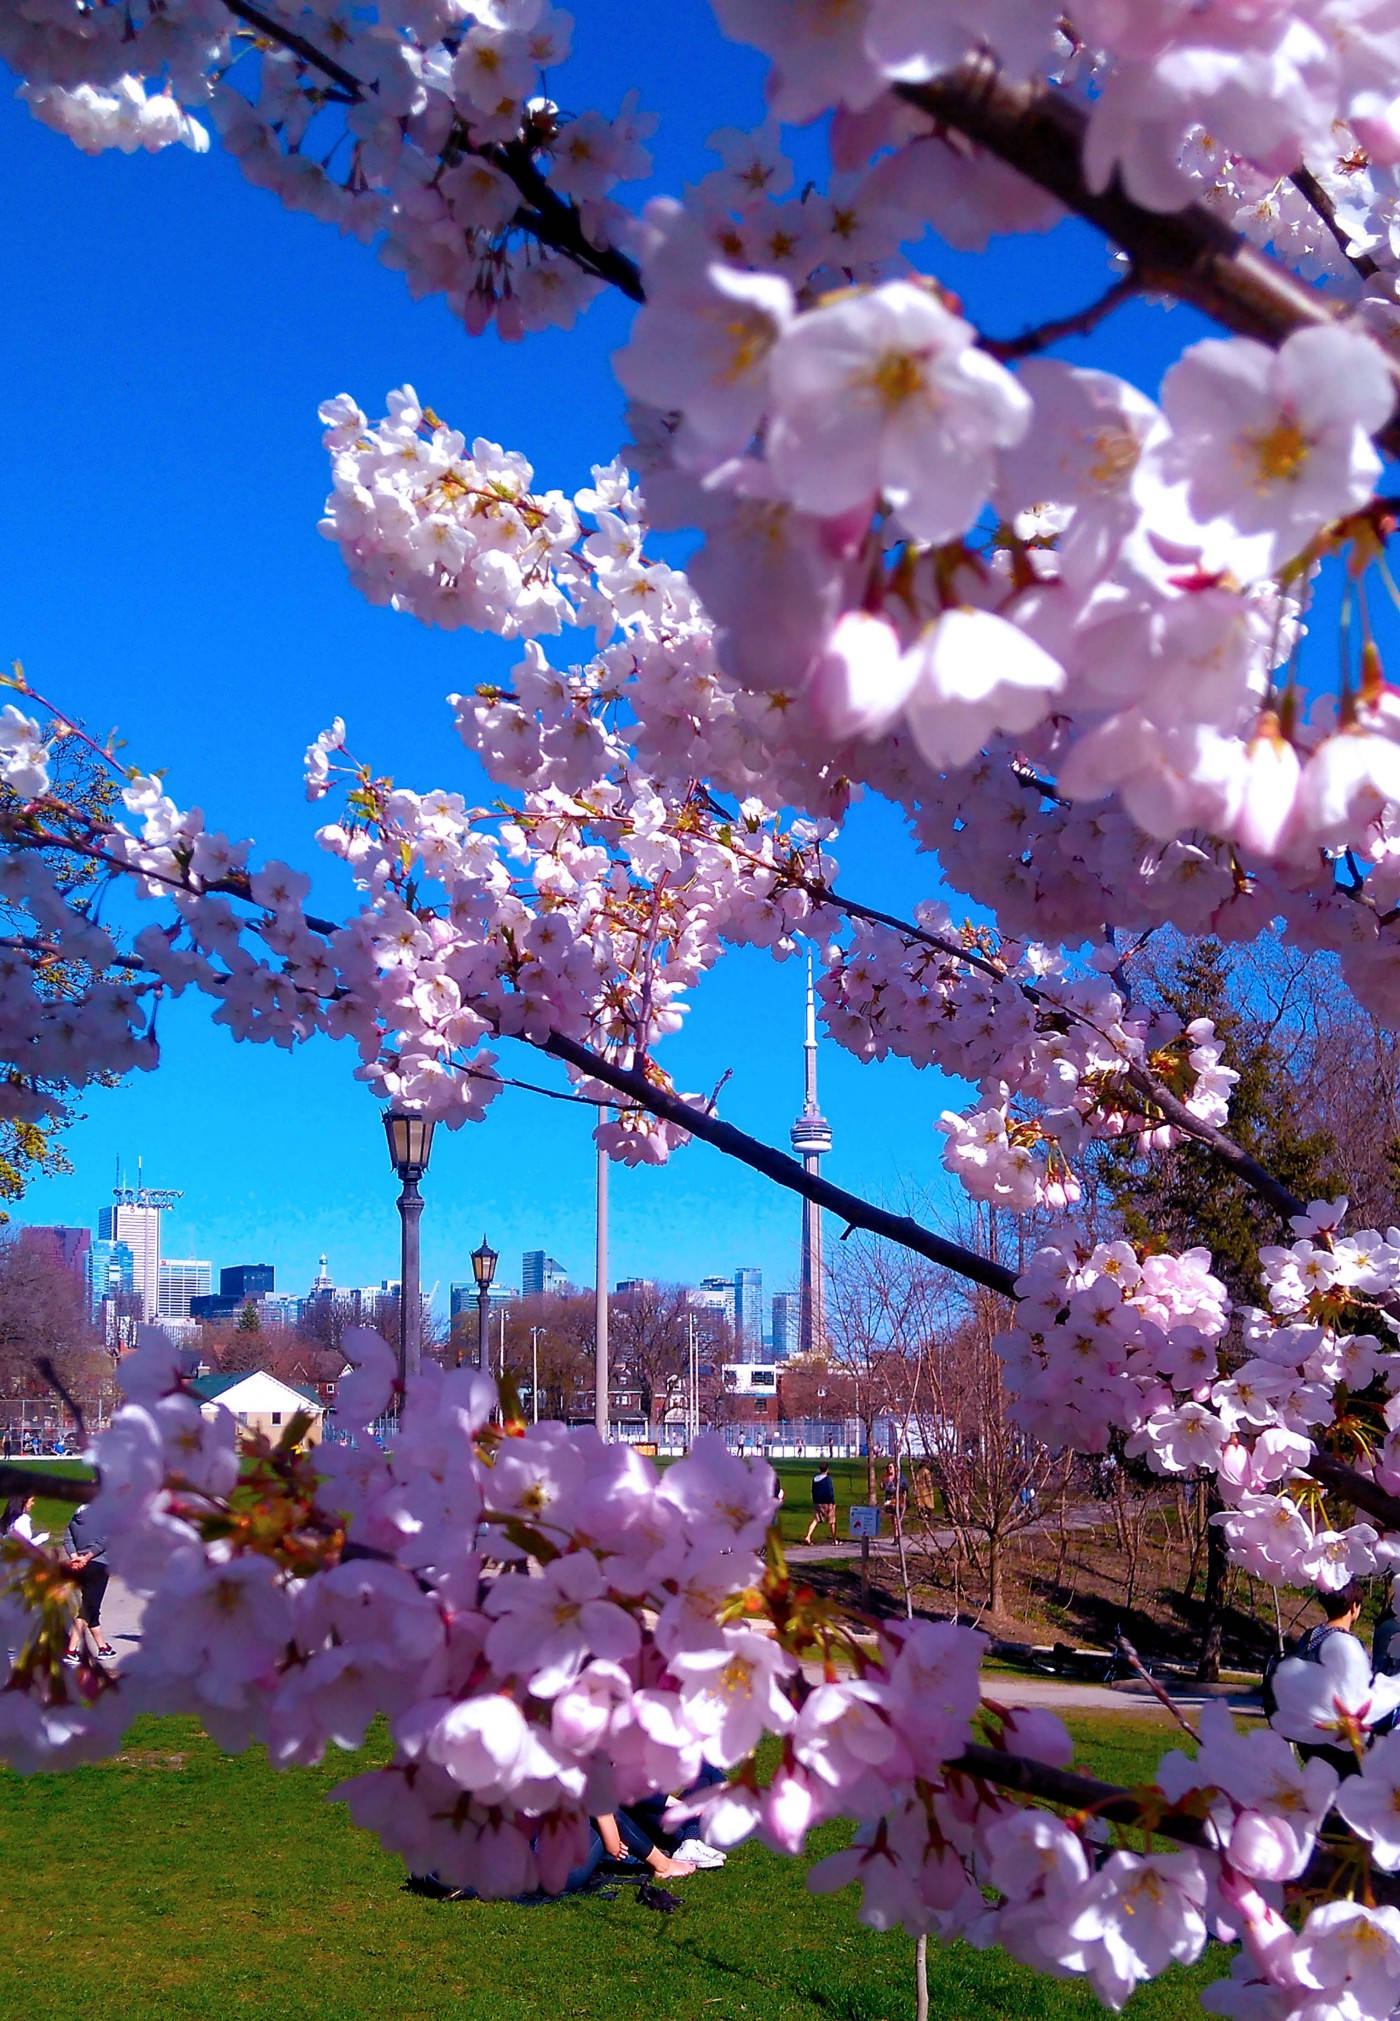 The Toronto CN Tower appears through cherry blossom branches against a blue sky.